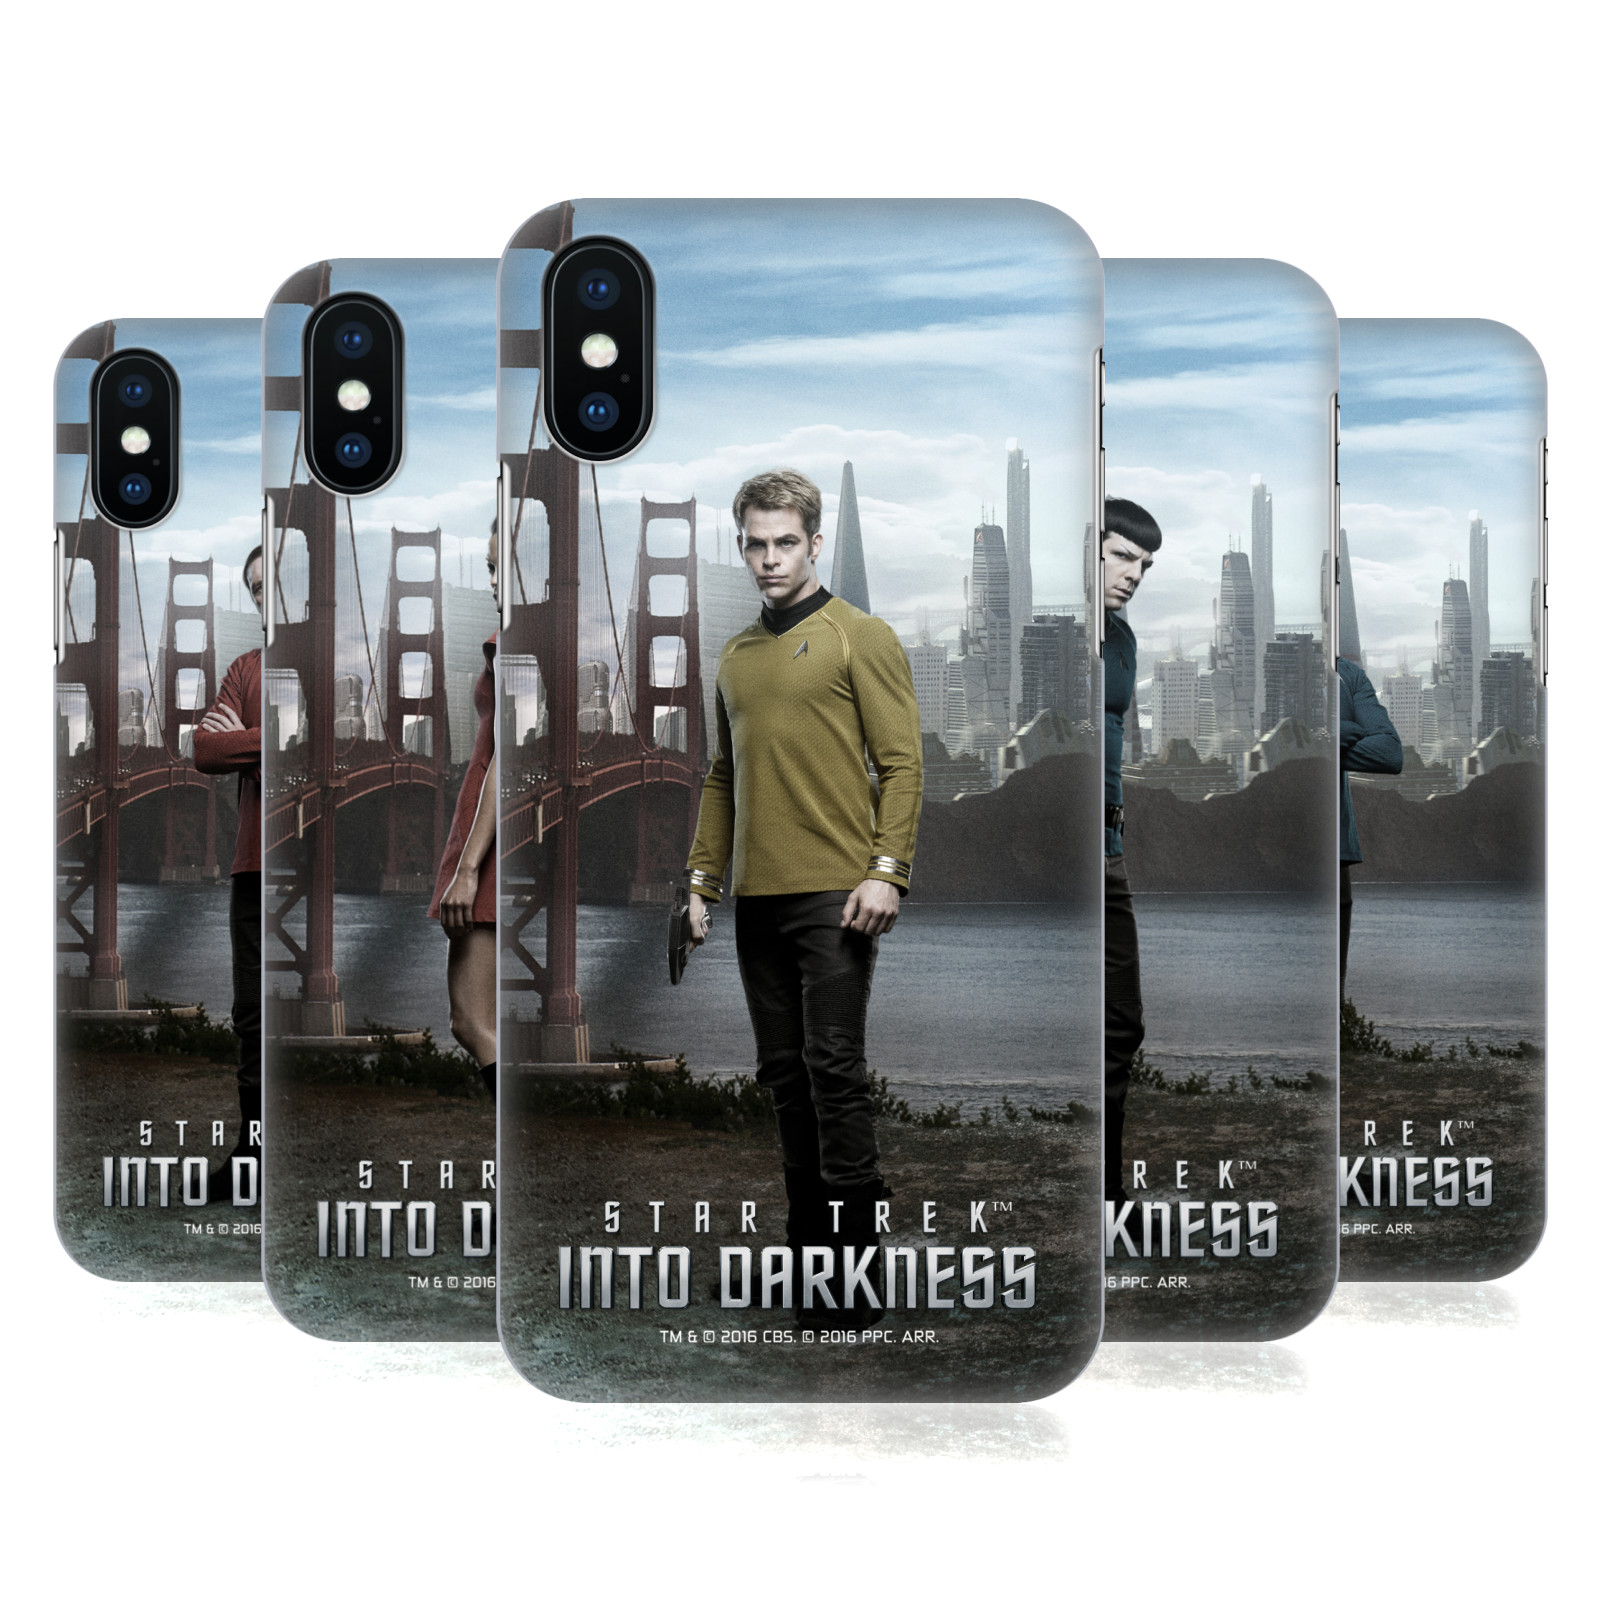 Star Trek Characters Into Darkness XII